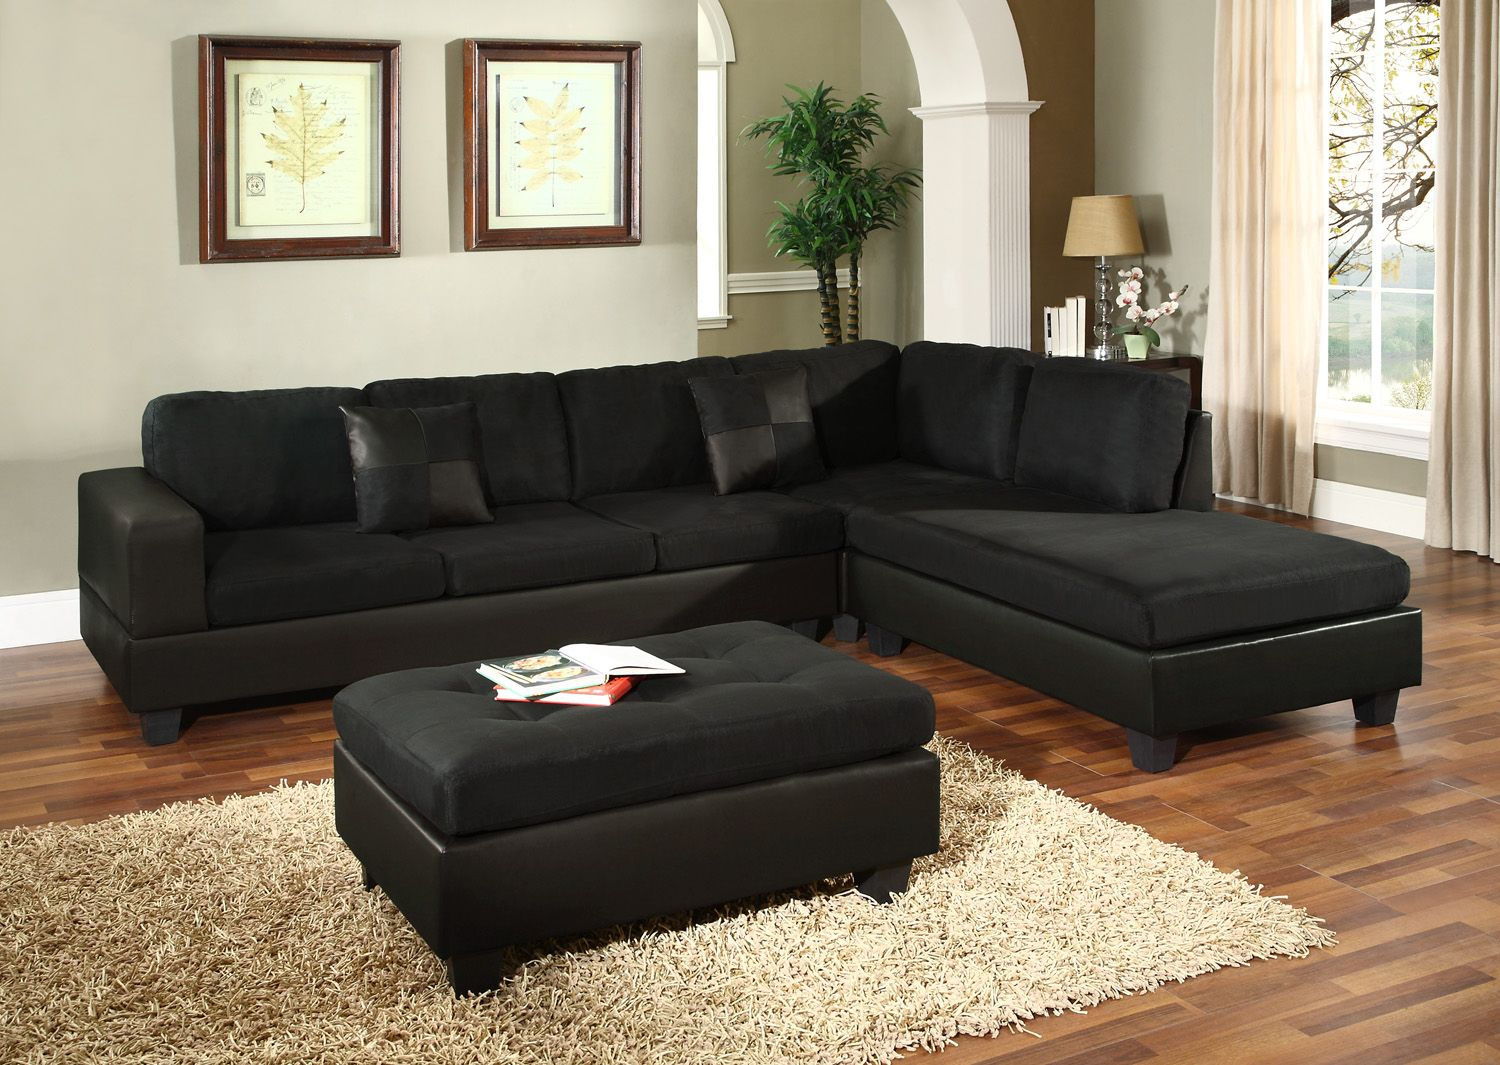 S0005 Black Microfiber Sectional Sofa